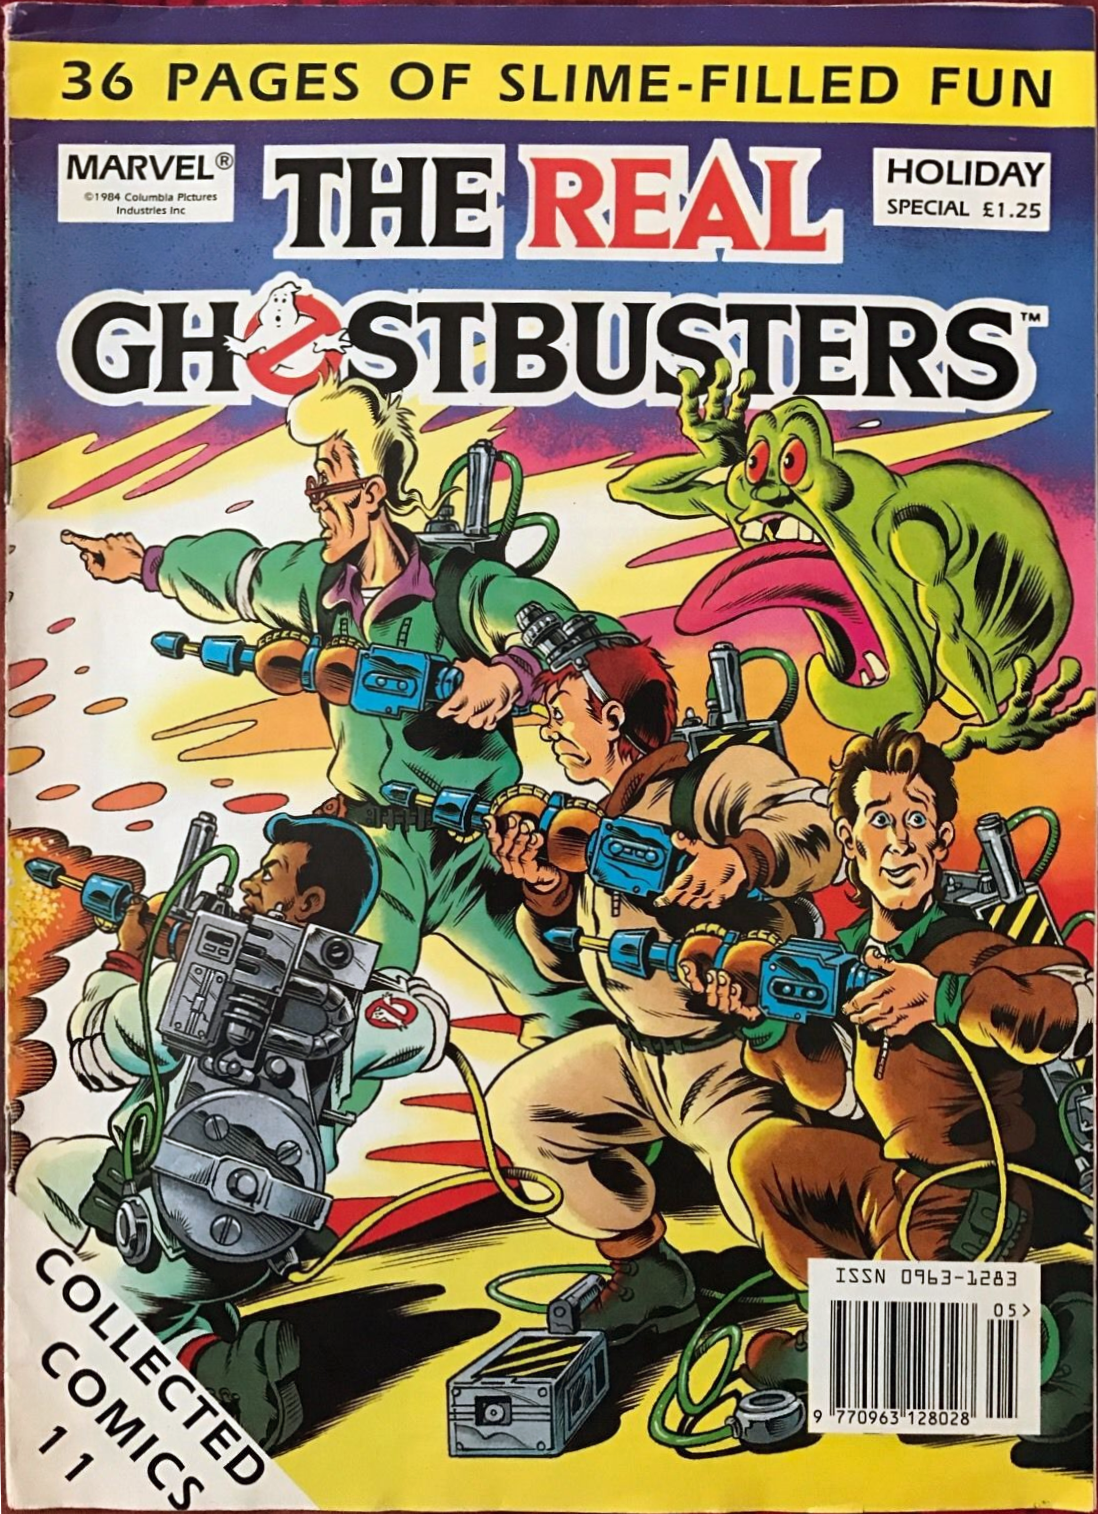 Marvel Comics Ltd- The Real Ghostbusters Collected Comics 11 Holiday Special